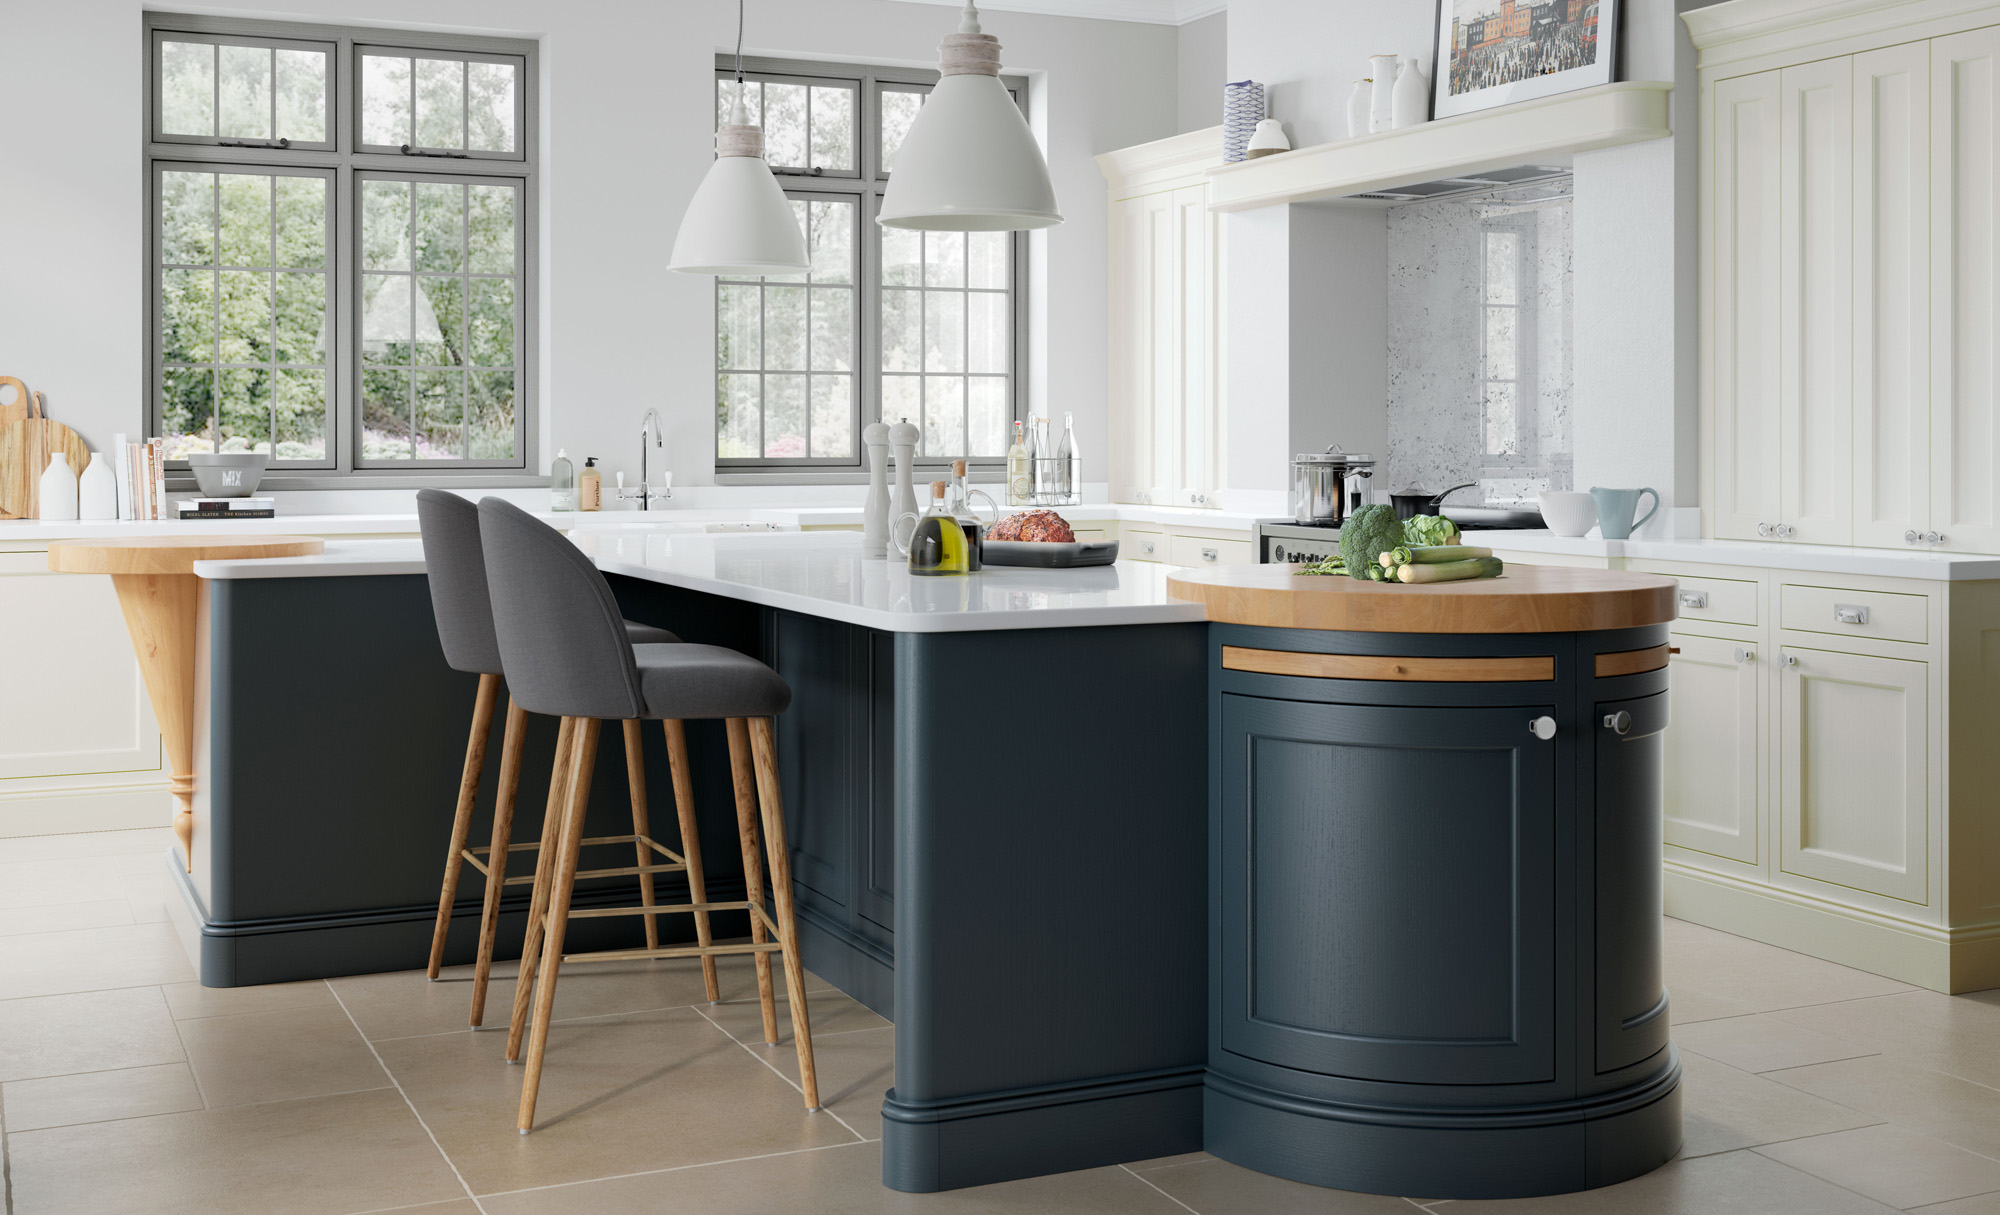 Belgravia Midnight Blue & Porcelain, Belgravia Inframe Painted consists of a 20mm overpainted, solid ash frame with flat, veneered ash centre panel and internal moulding. Grain visible. Midnight Blue using our colour matching service.